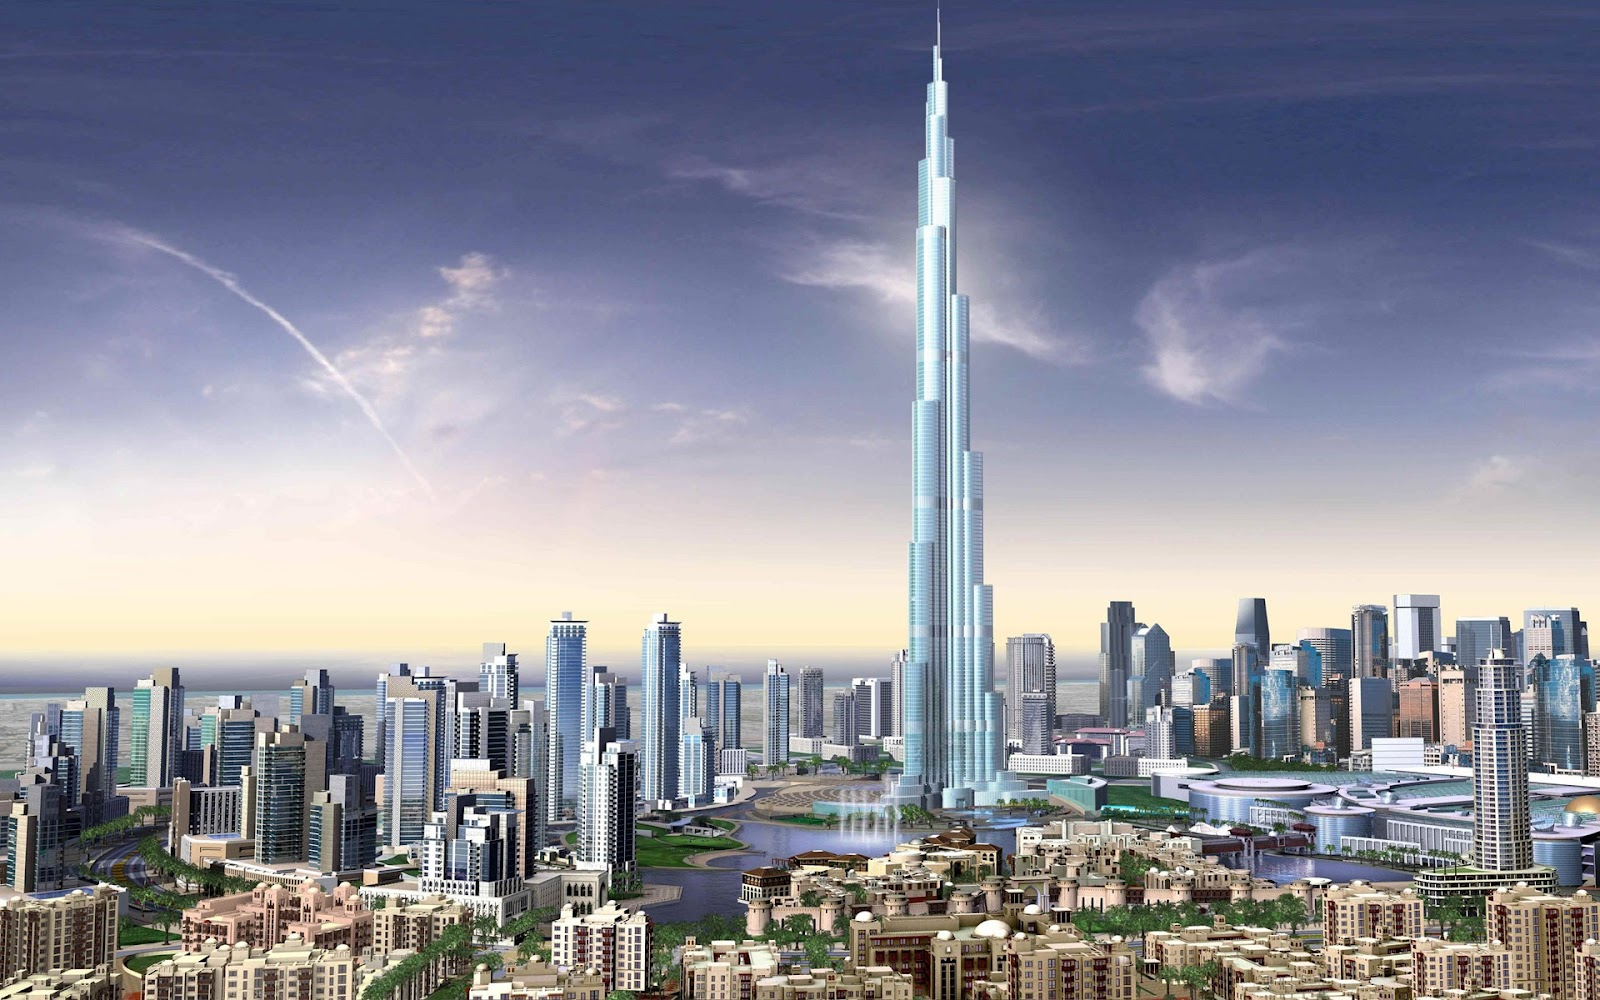 World visits the modern advance city dubai wallpaper Dubai buildings